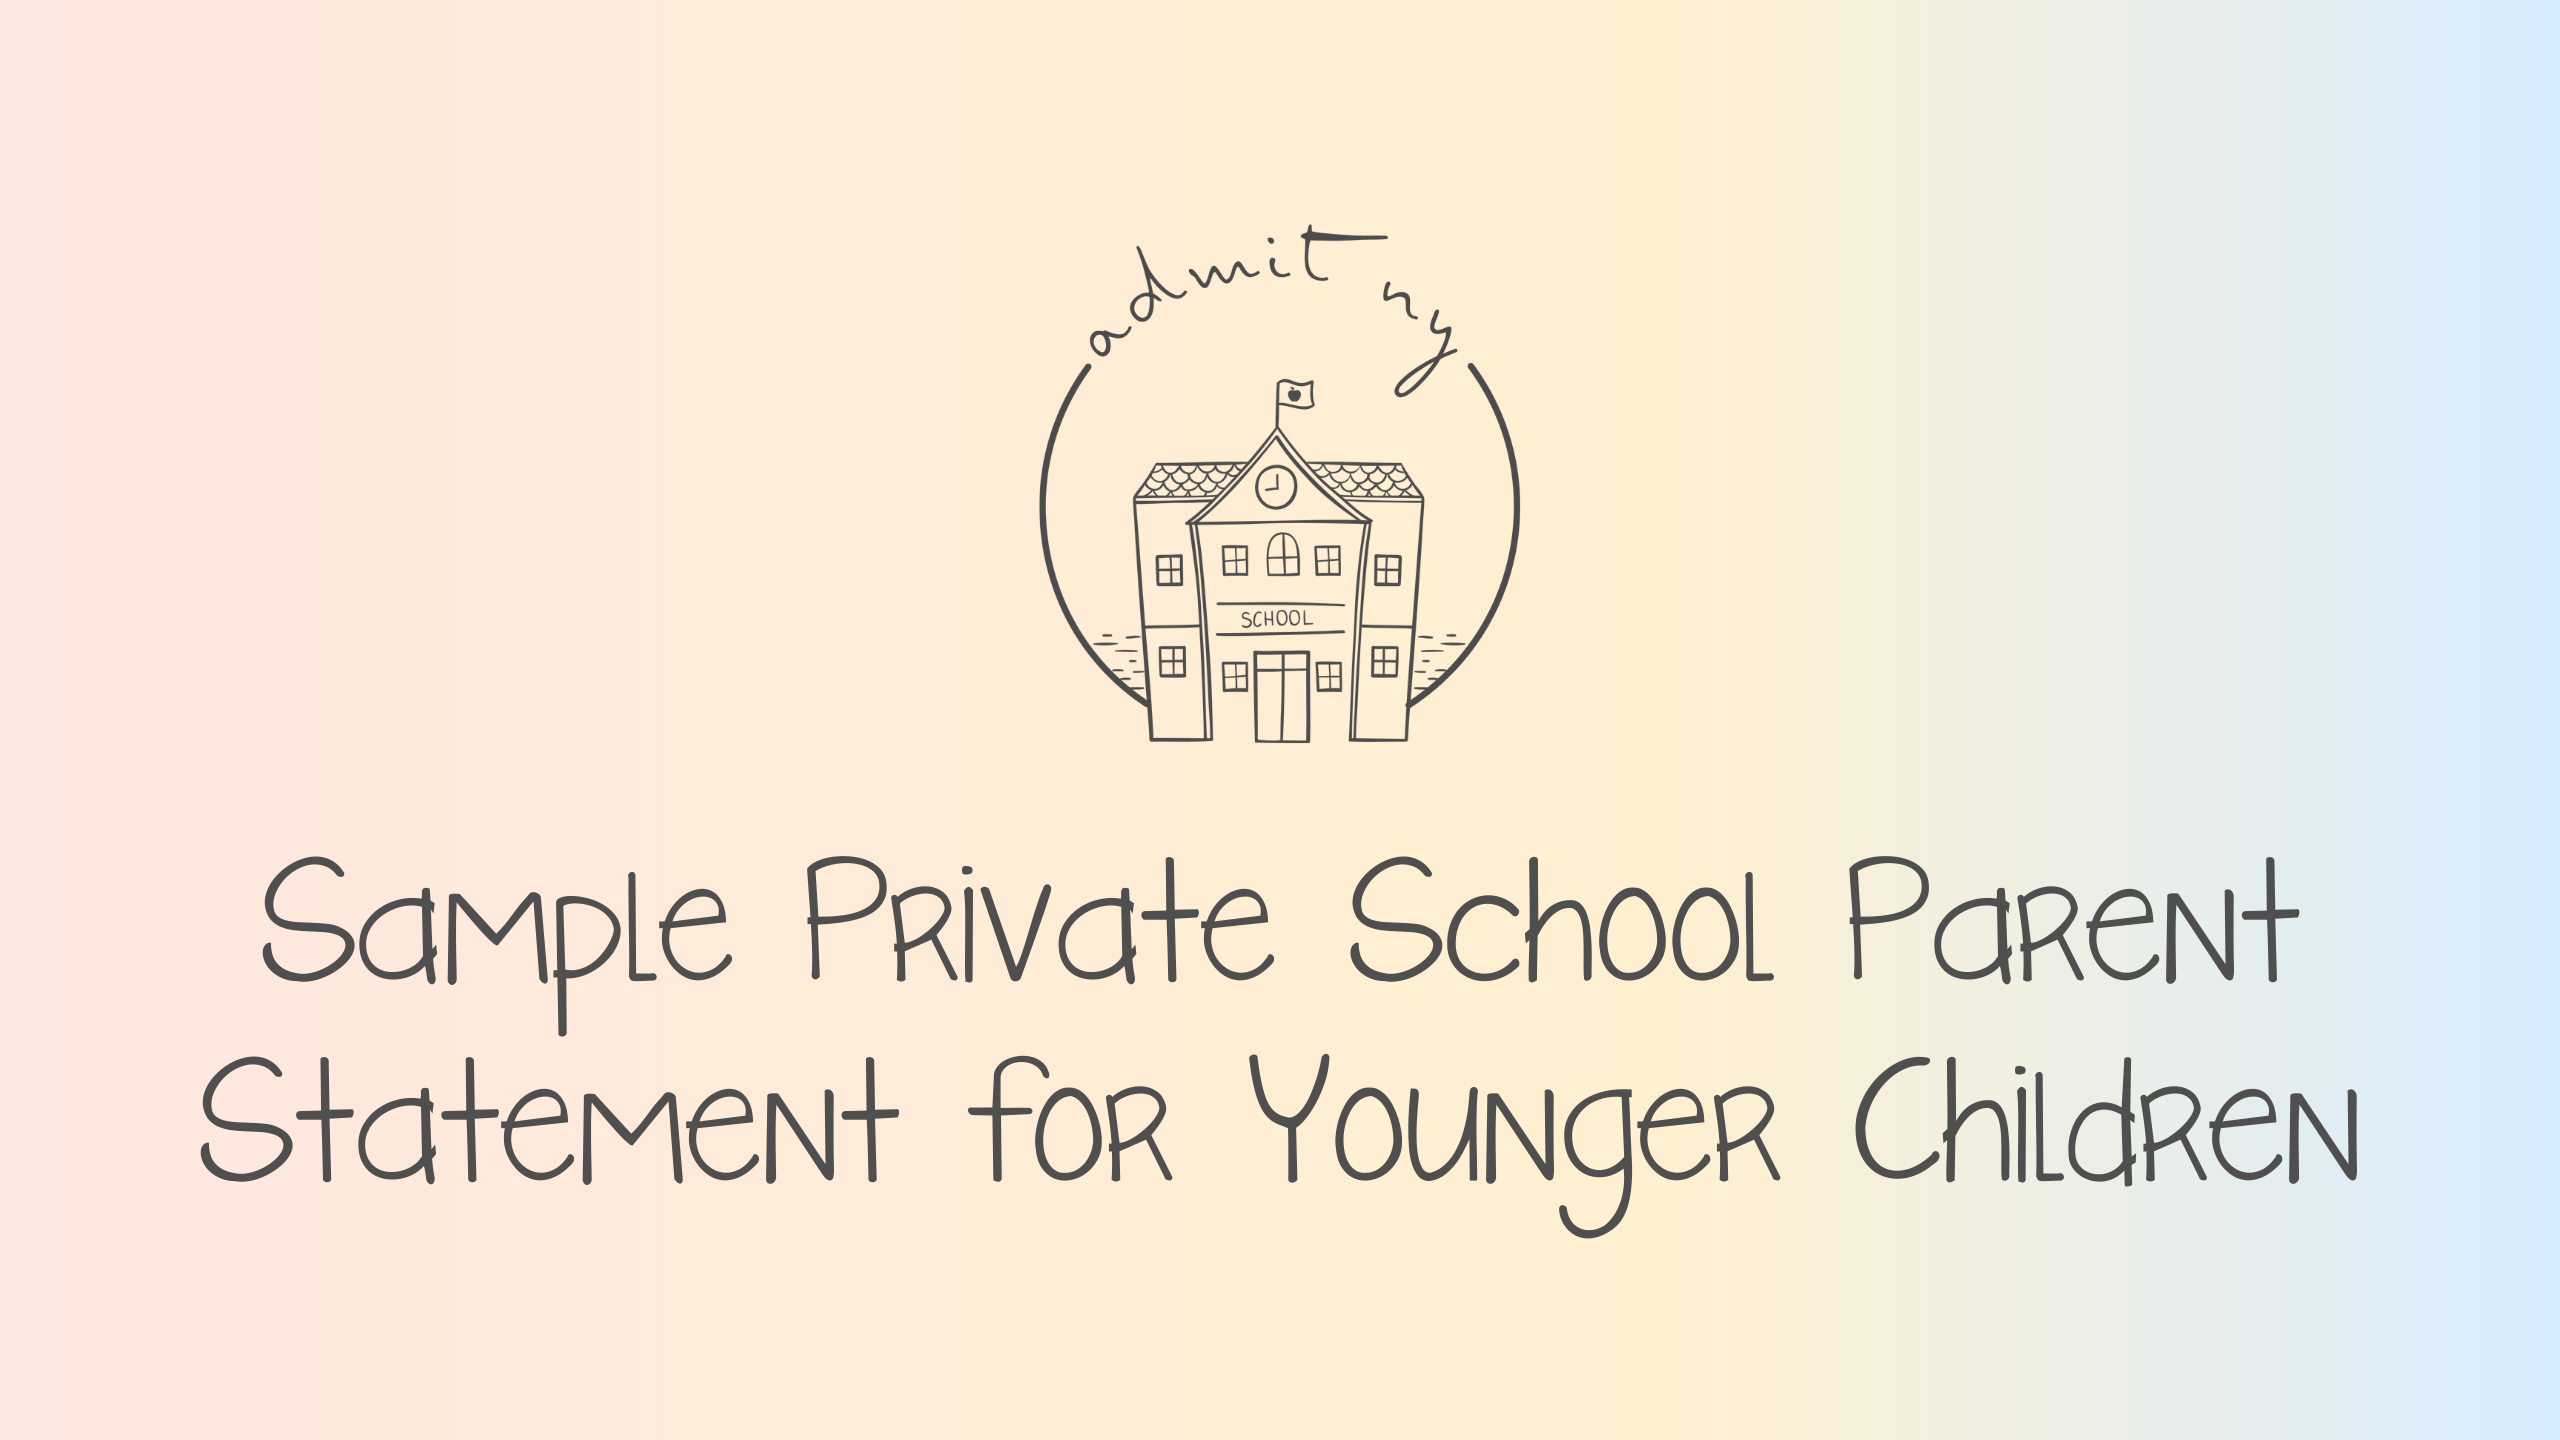 Sample Private School Parent Statement for Younger Children